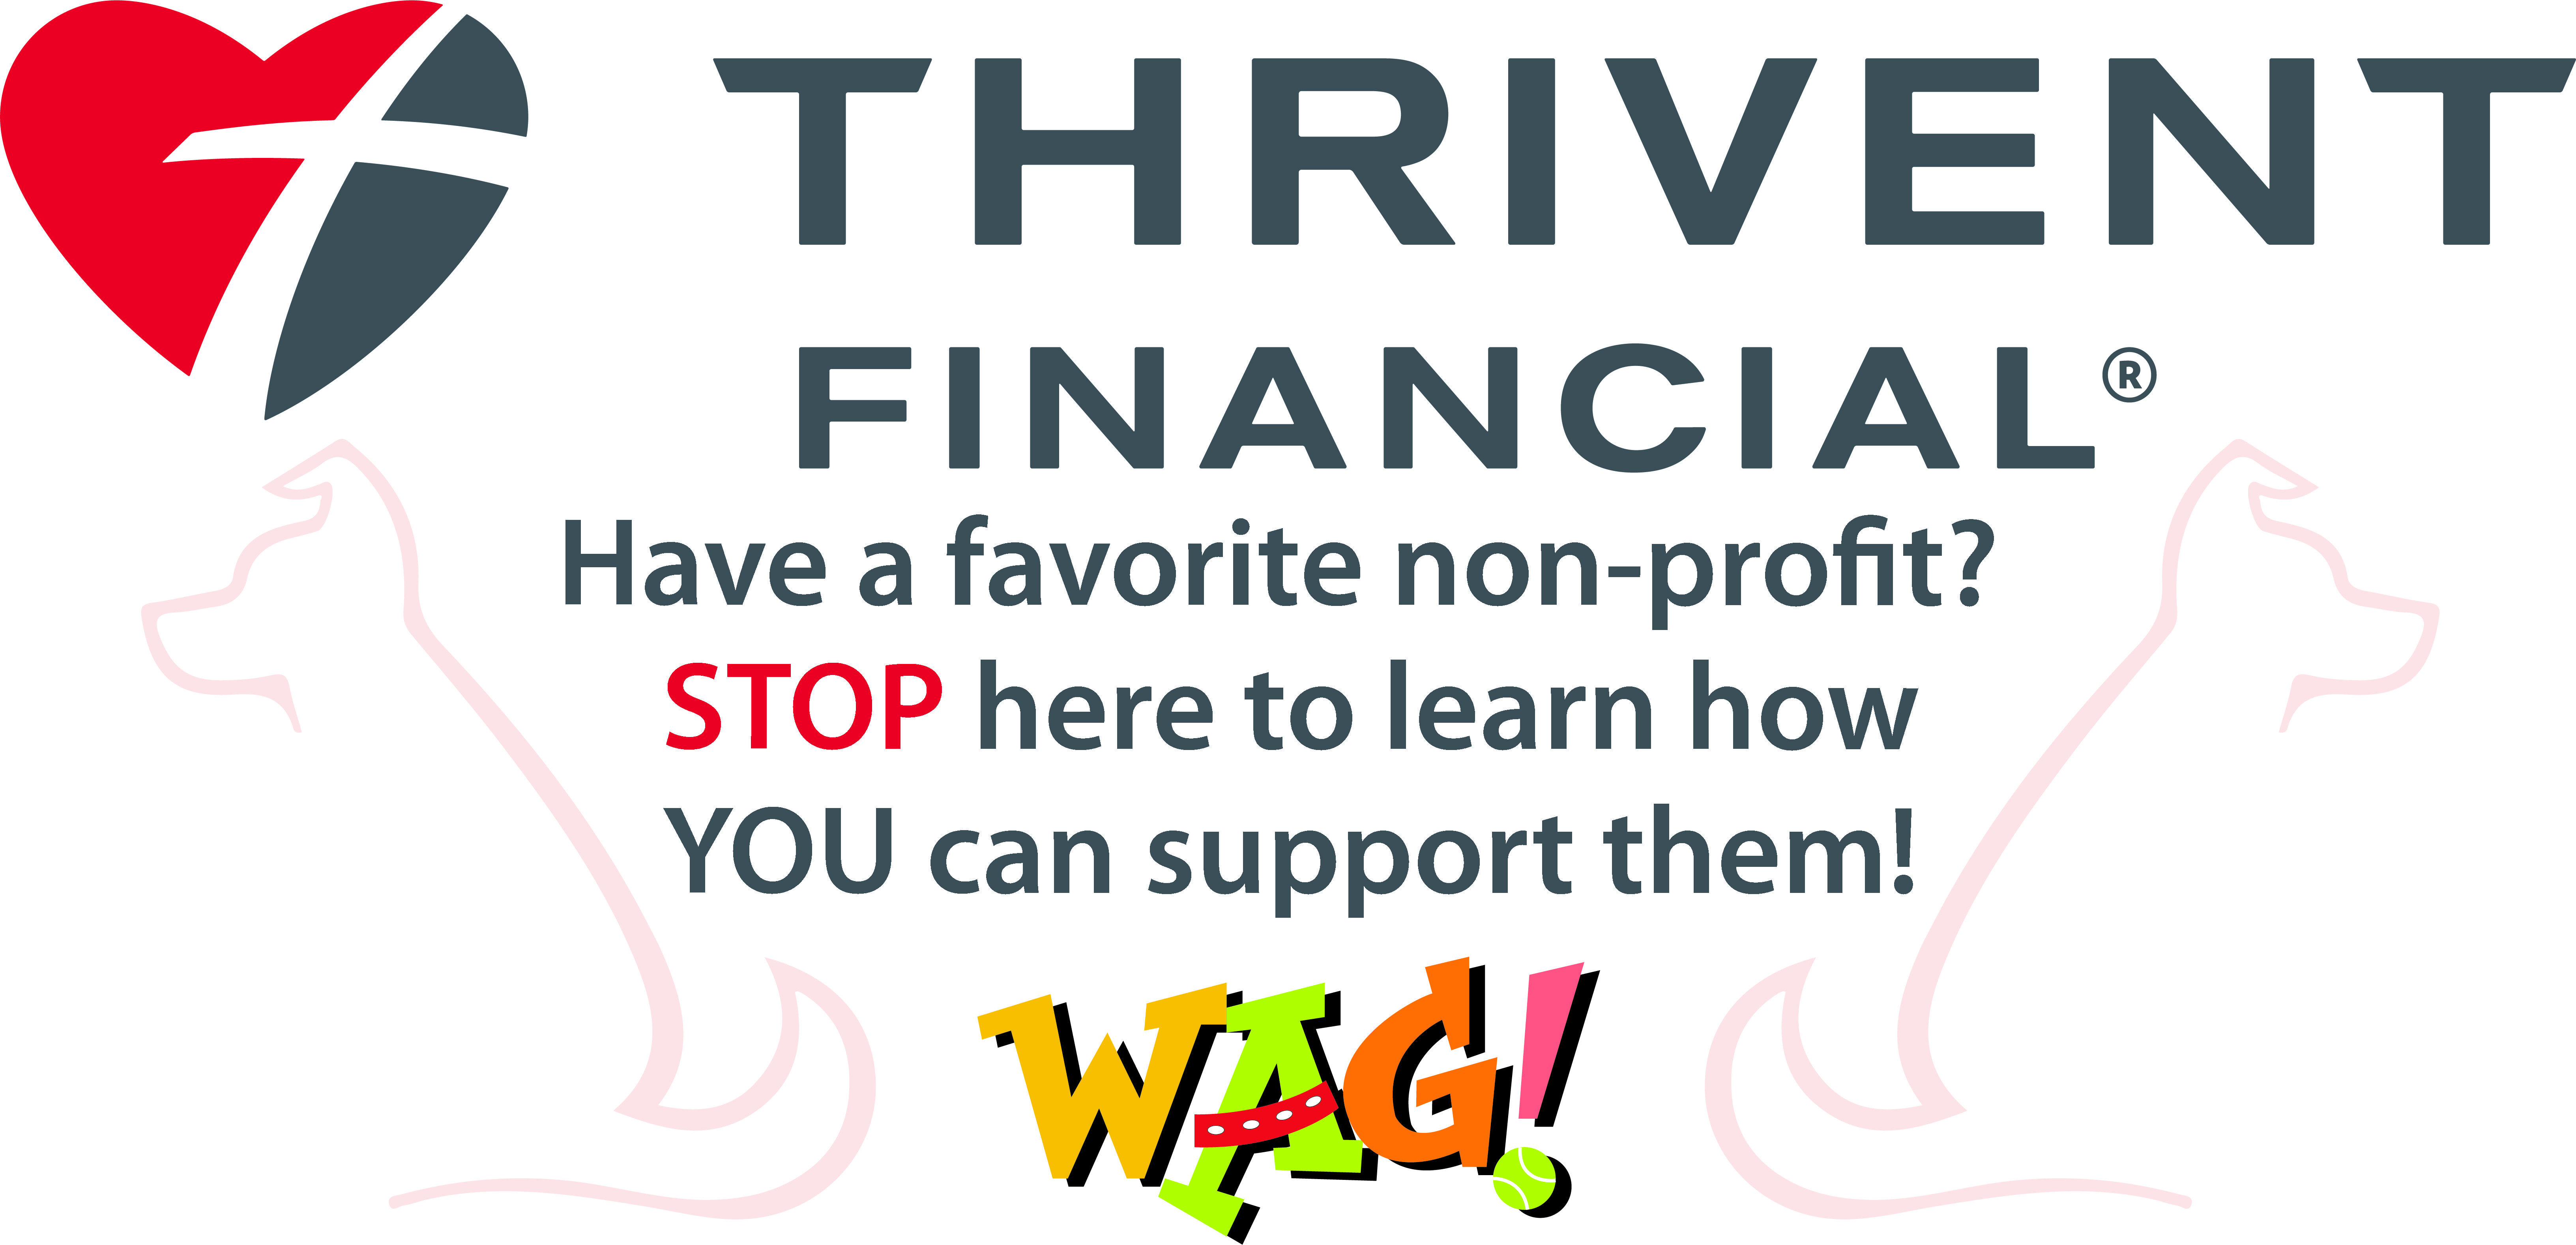 Thrivent Financial Wag Banner 4x8 Banner Designed Printed And